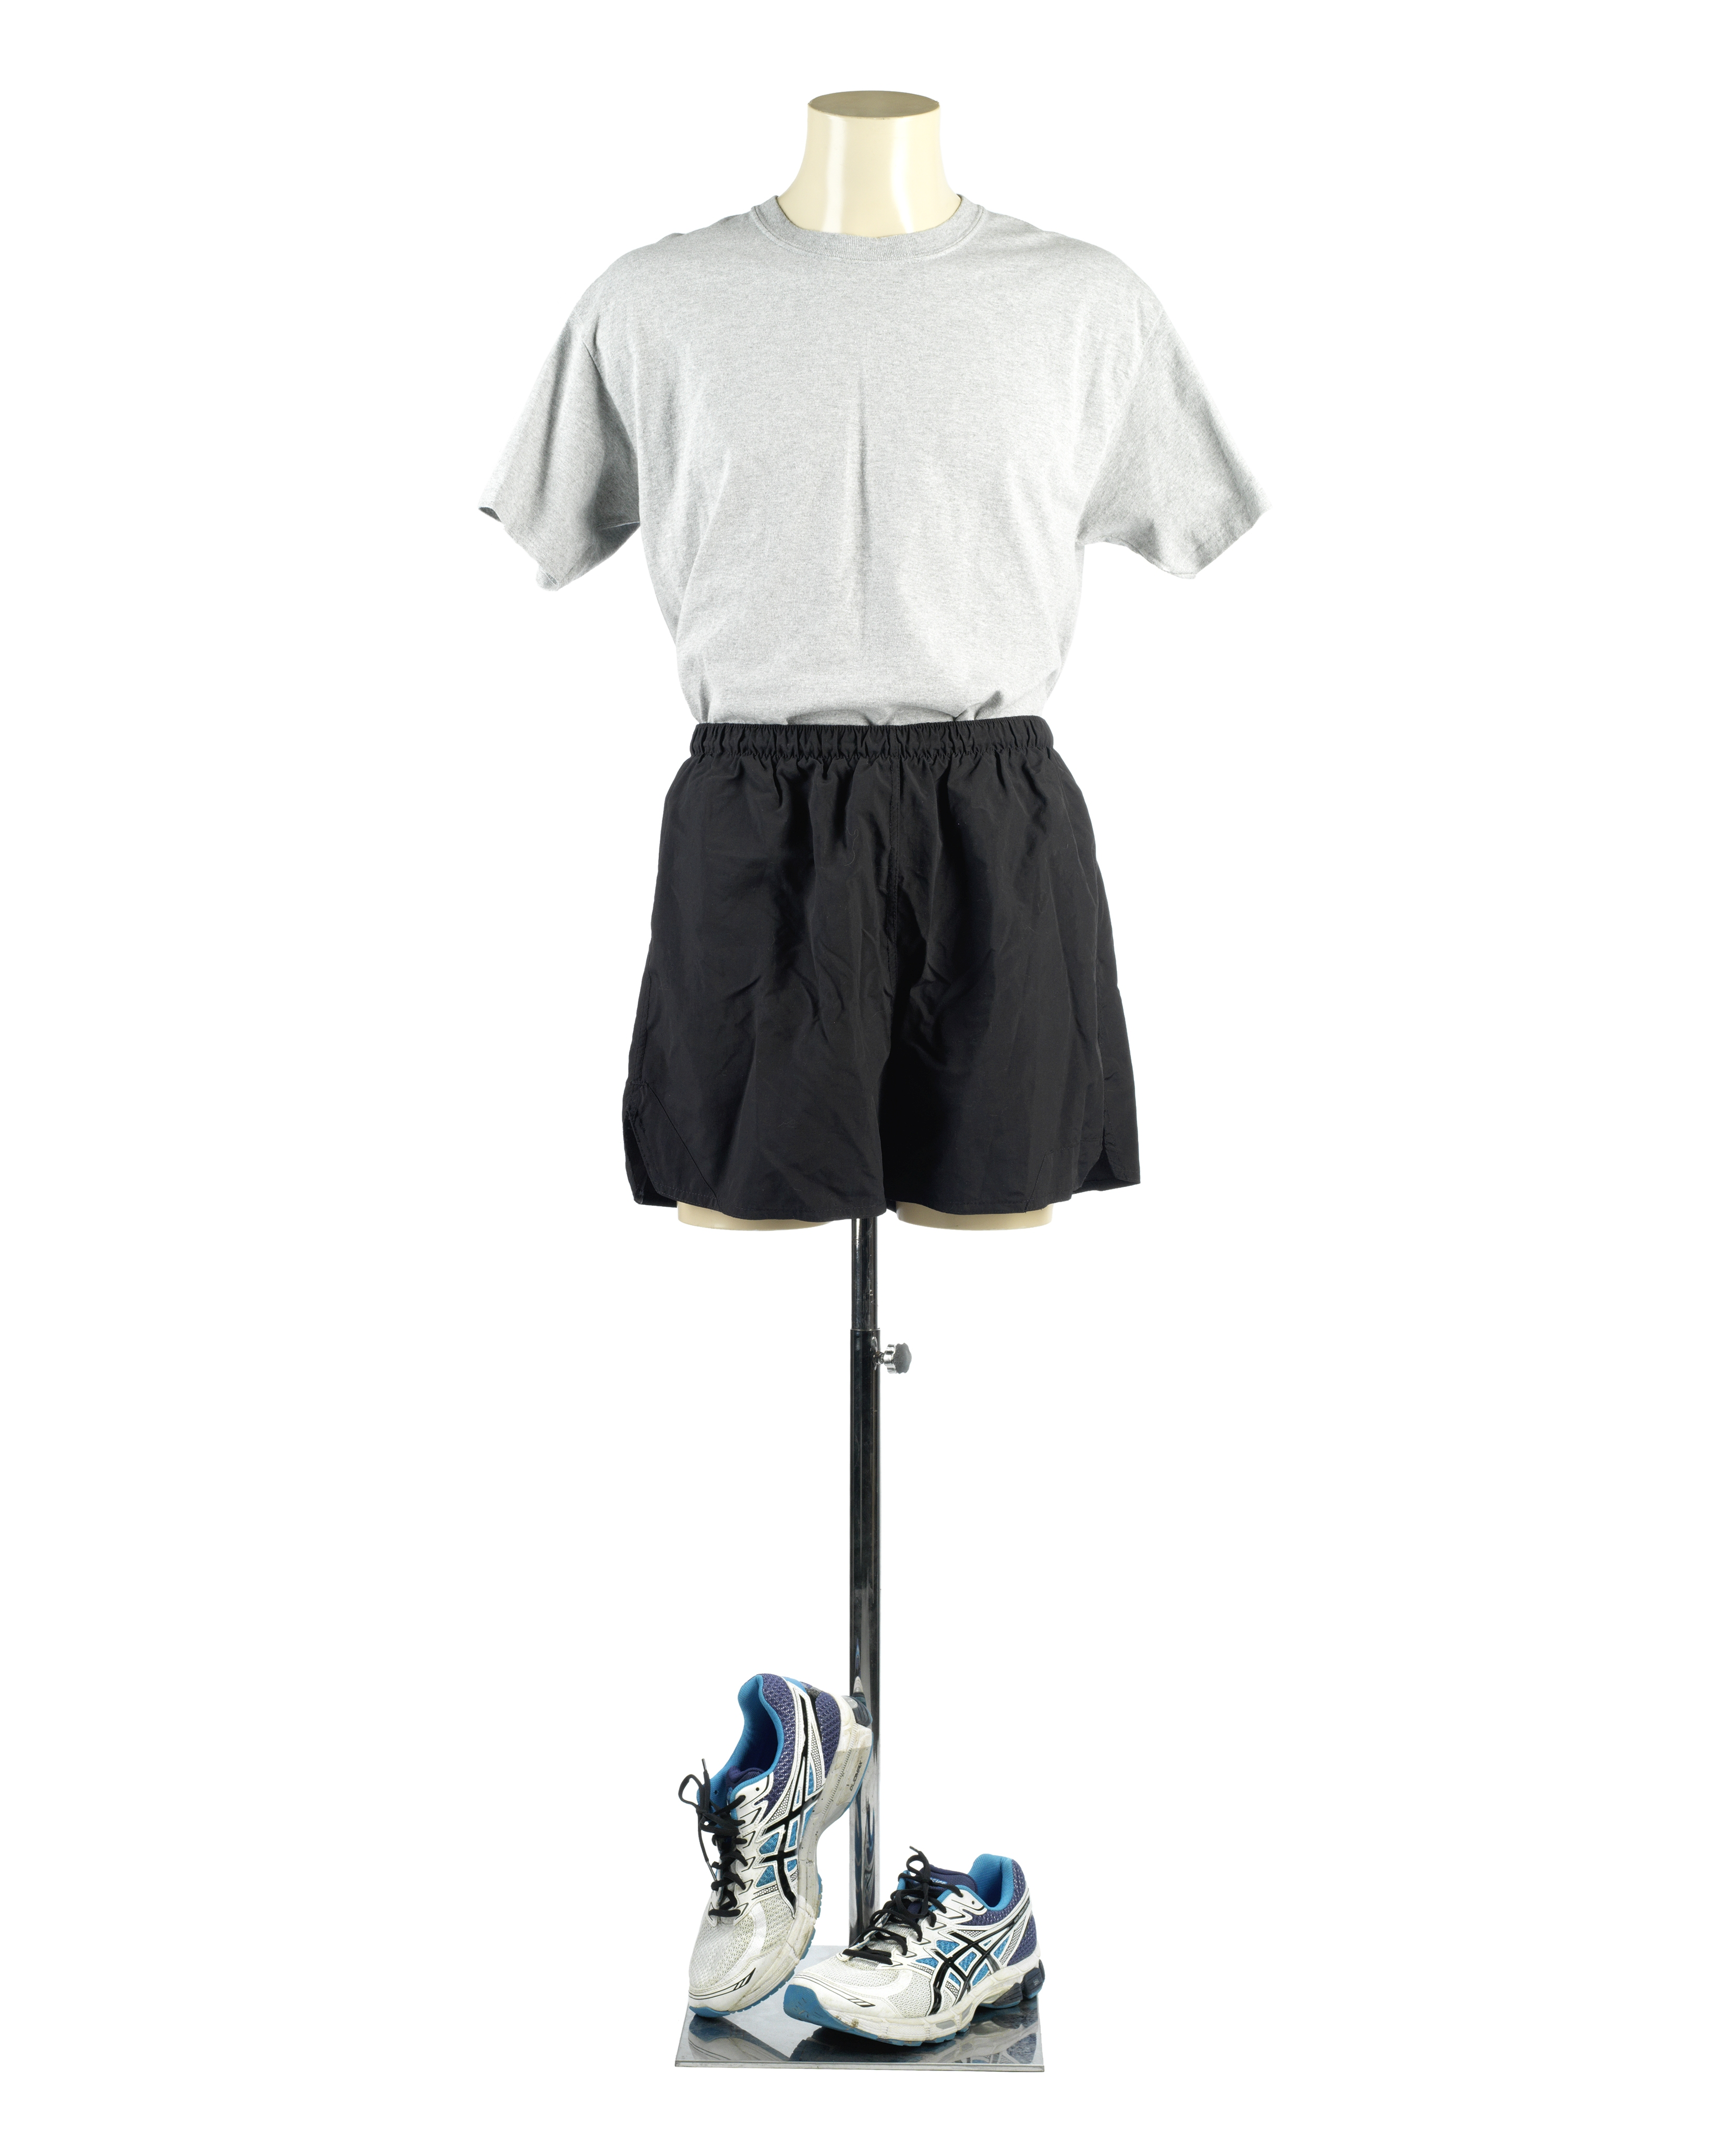 Lot 26 - Brad Pitt: Two sets of sports kit with trainers worn by Brad Pitt for his role as 'Glen McMahon' ...